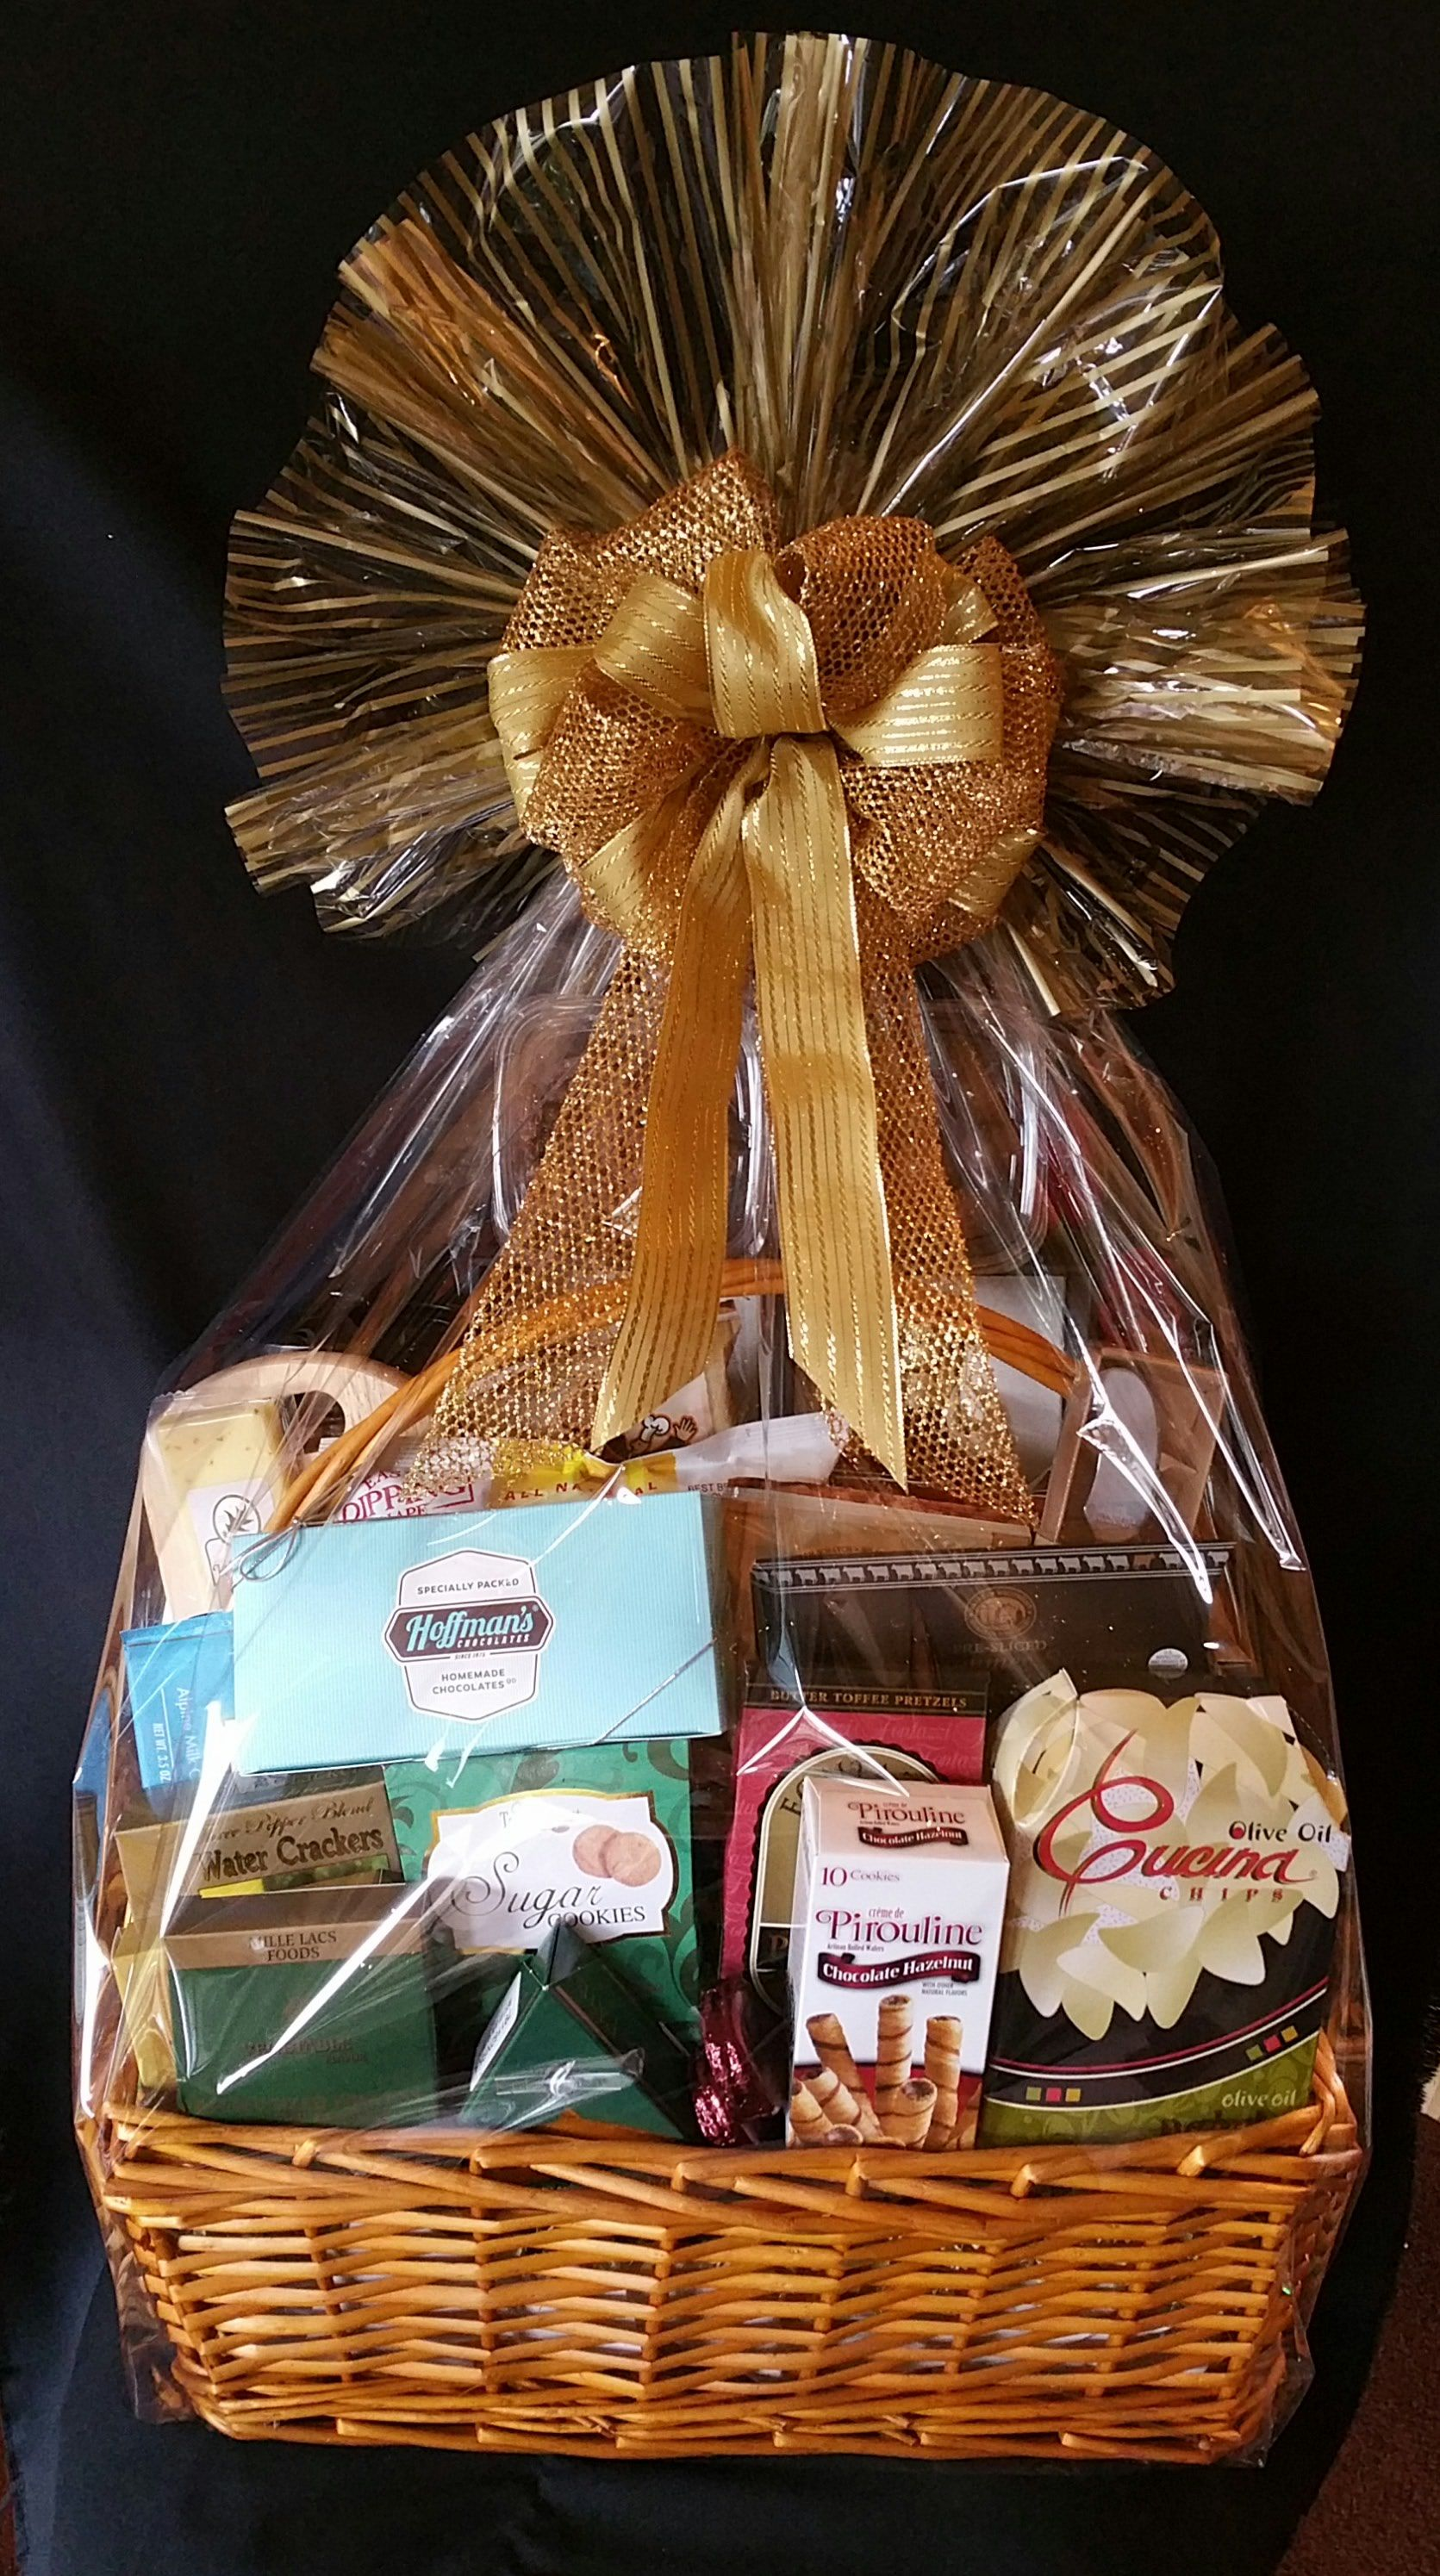 Jack Daniels Blue Label Gift Basket with various gourmet snacks and